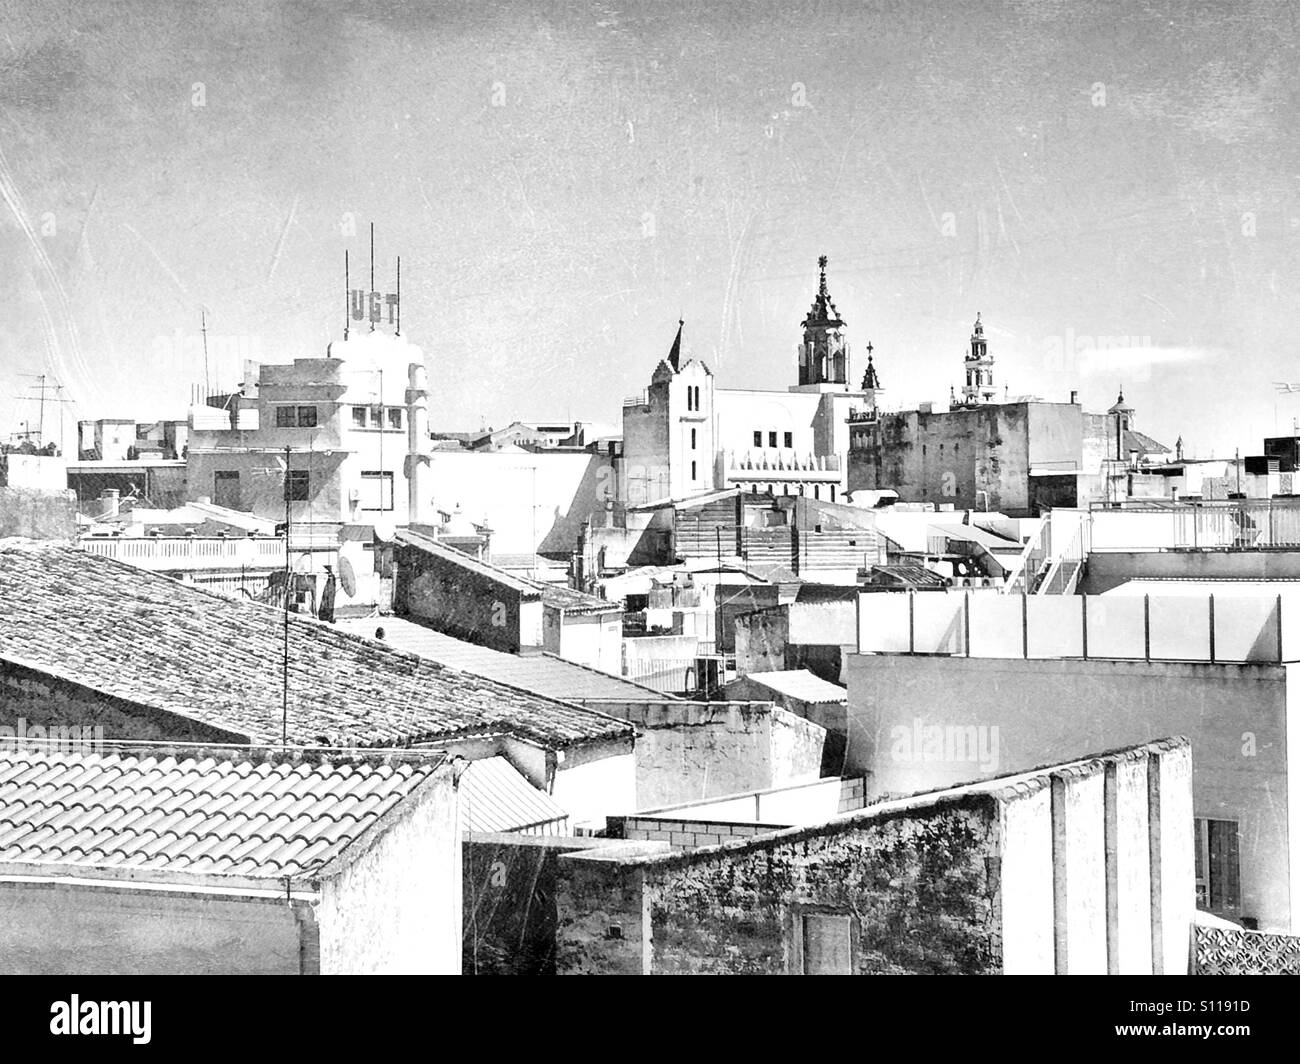 Spanish city filtered into an old time black and white photo - Stock Image